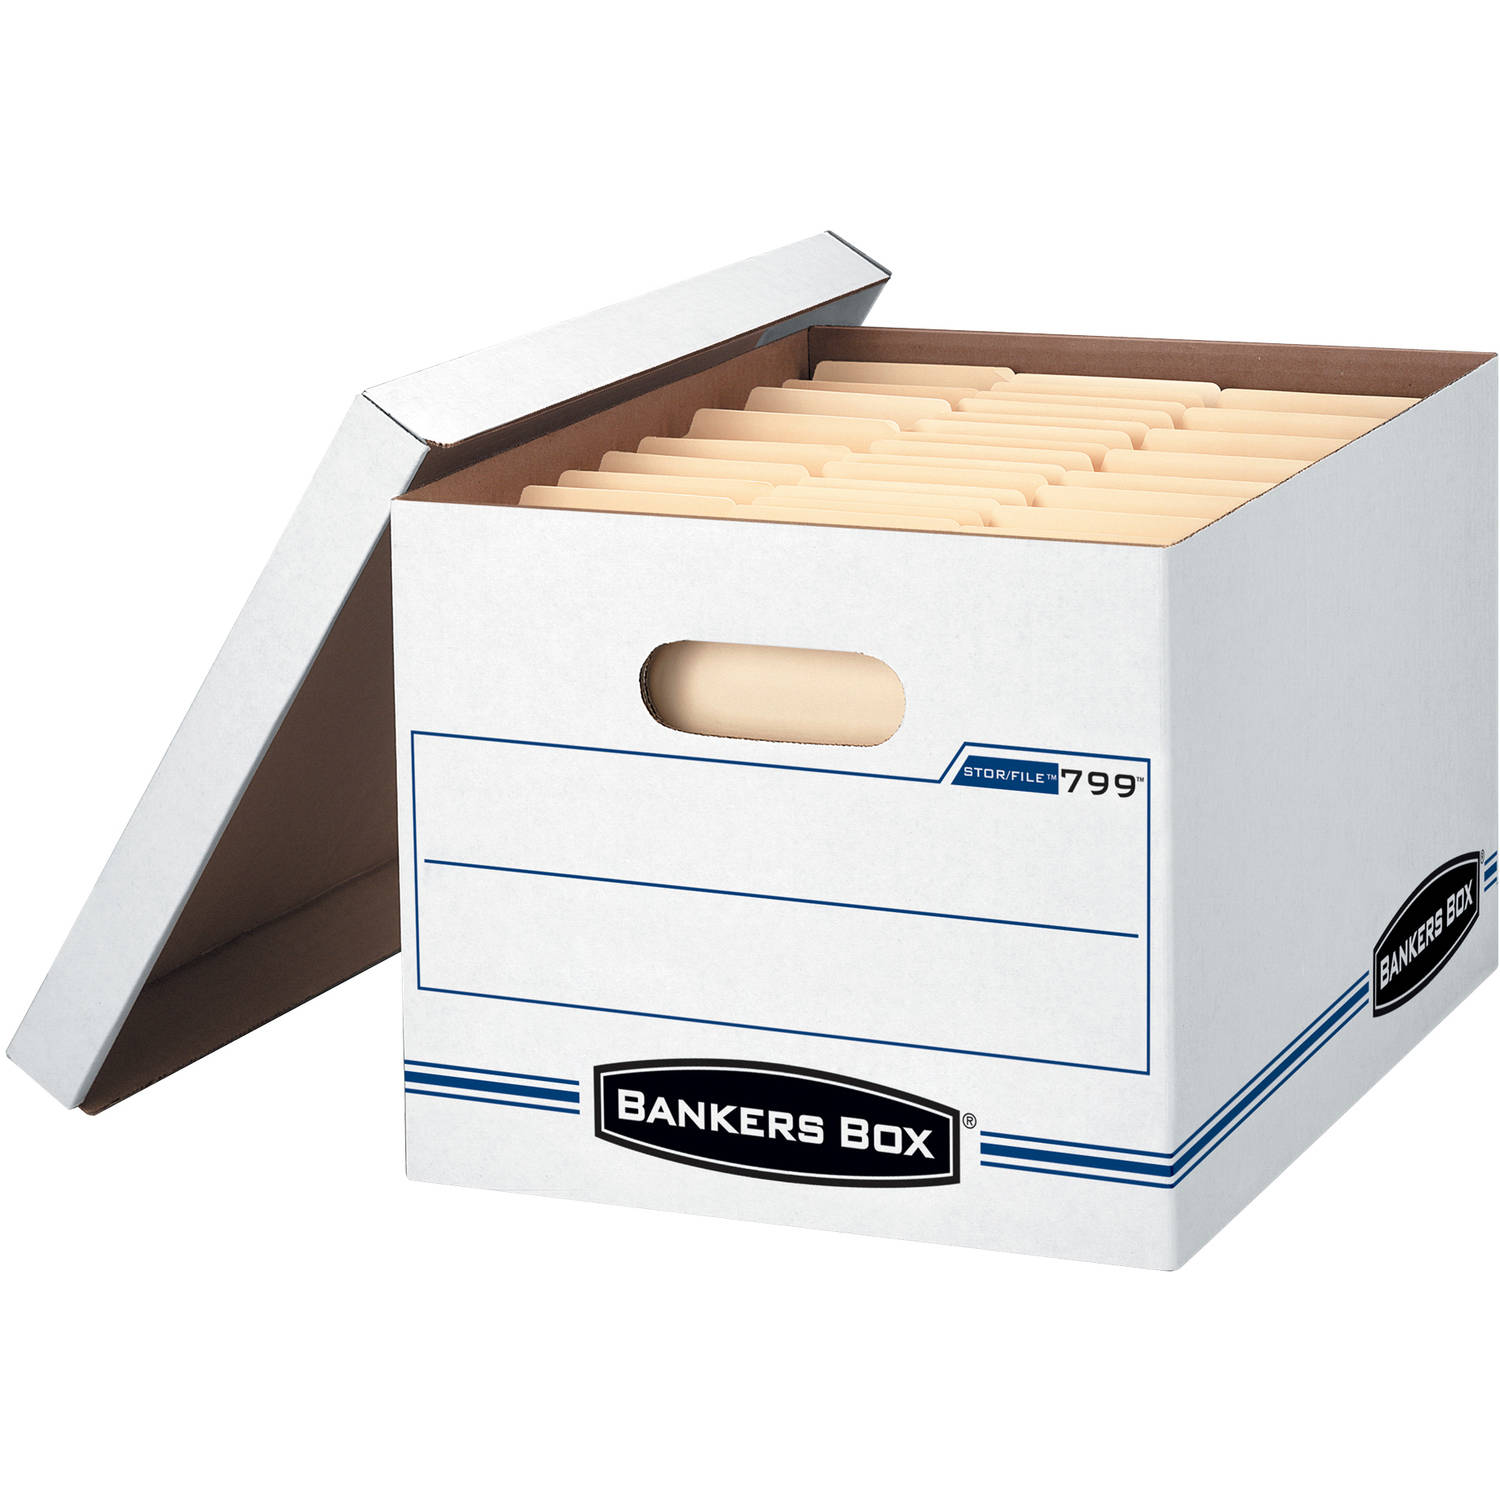 "Bankers Box Stor/File Storage Box with Lift-Off Lid, Letter/Legal, 12"" x 10"" x 15"", White, 10pk"